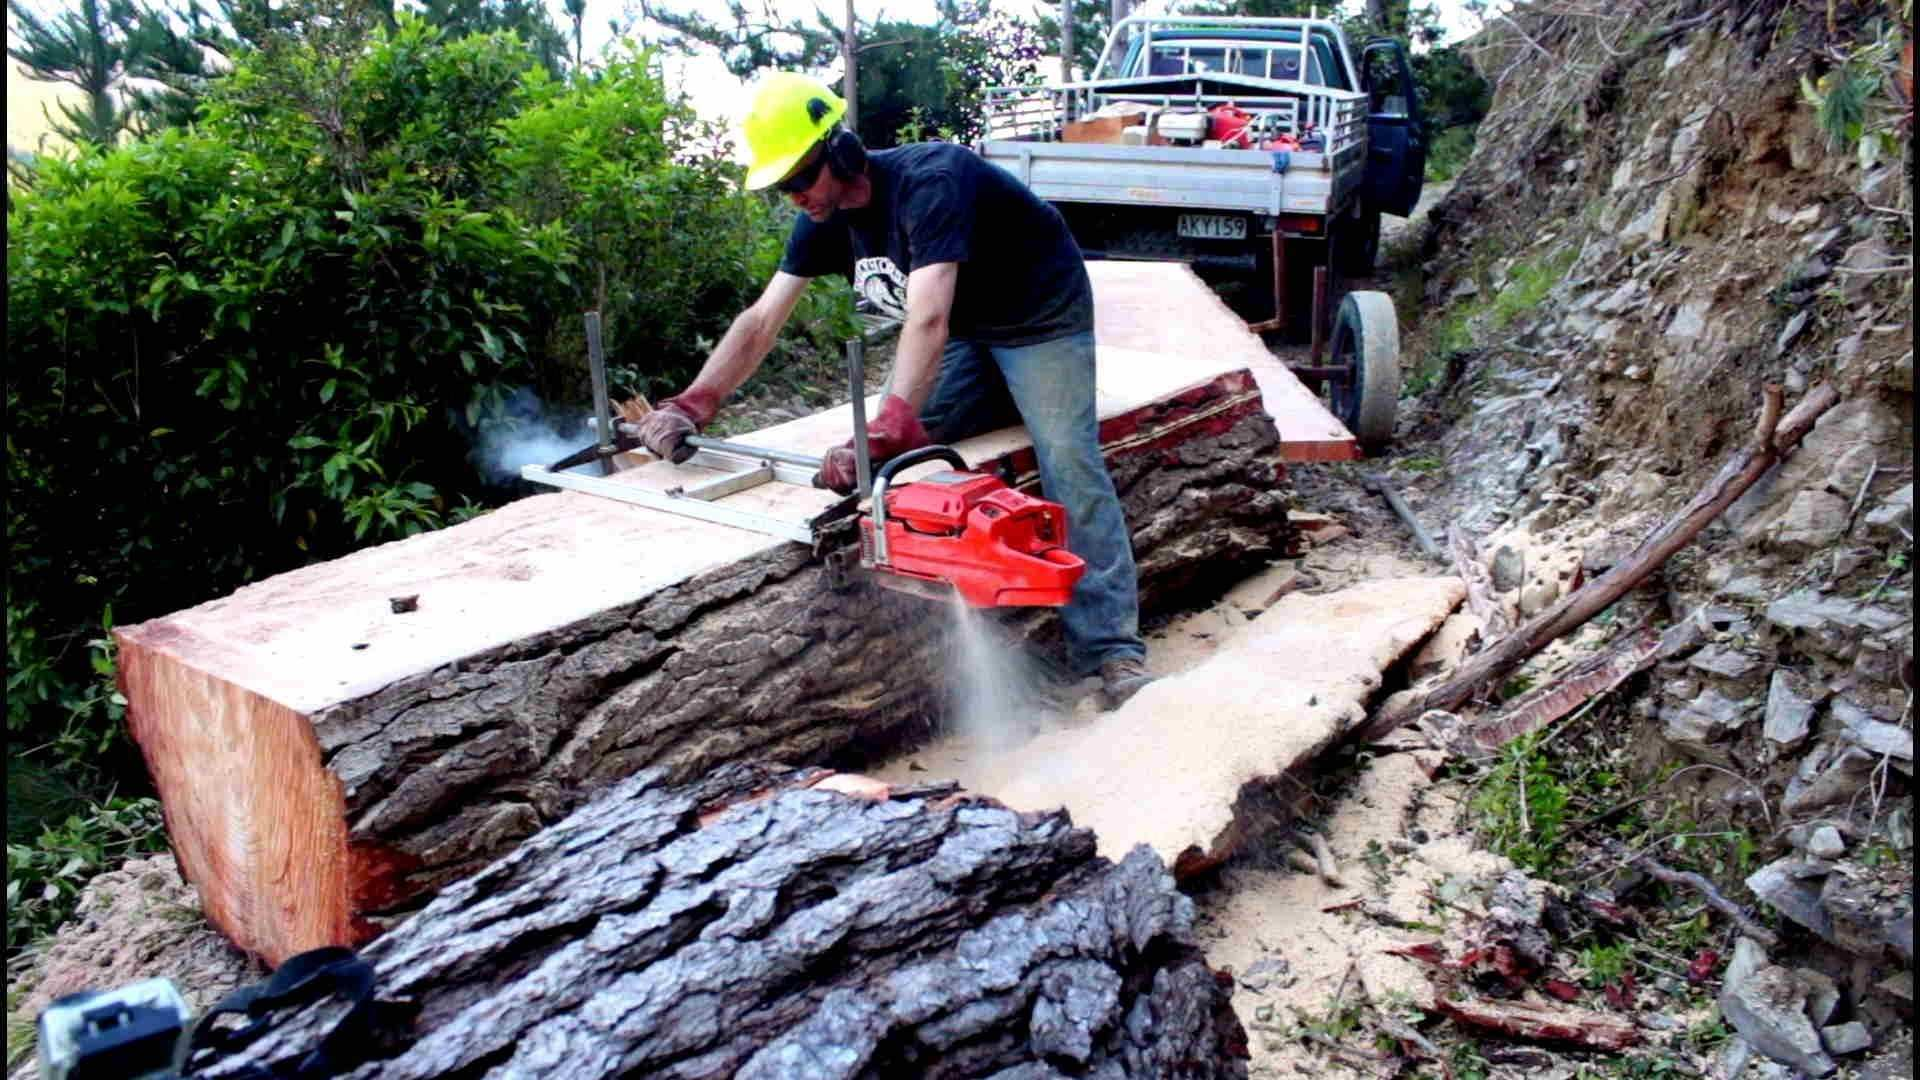 Felling a big pine tree & milling slabs with a portable Chainsaw